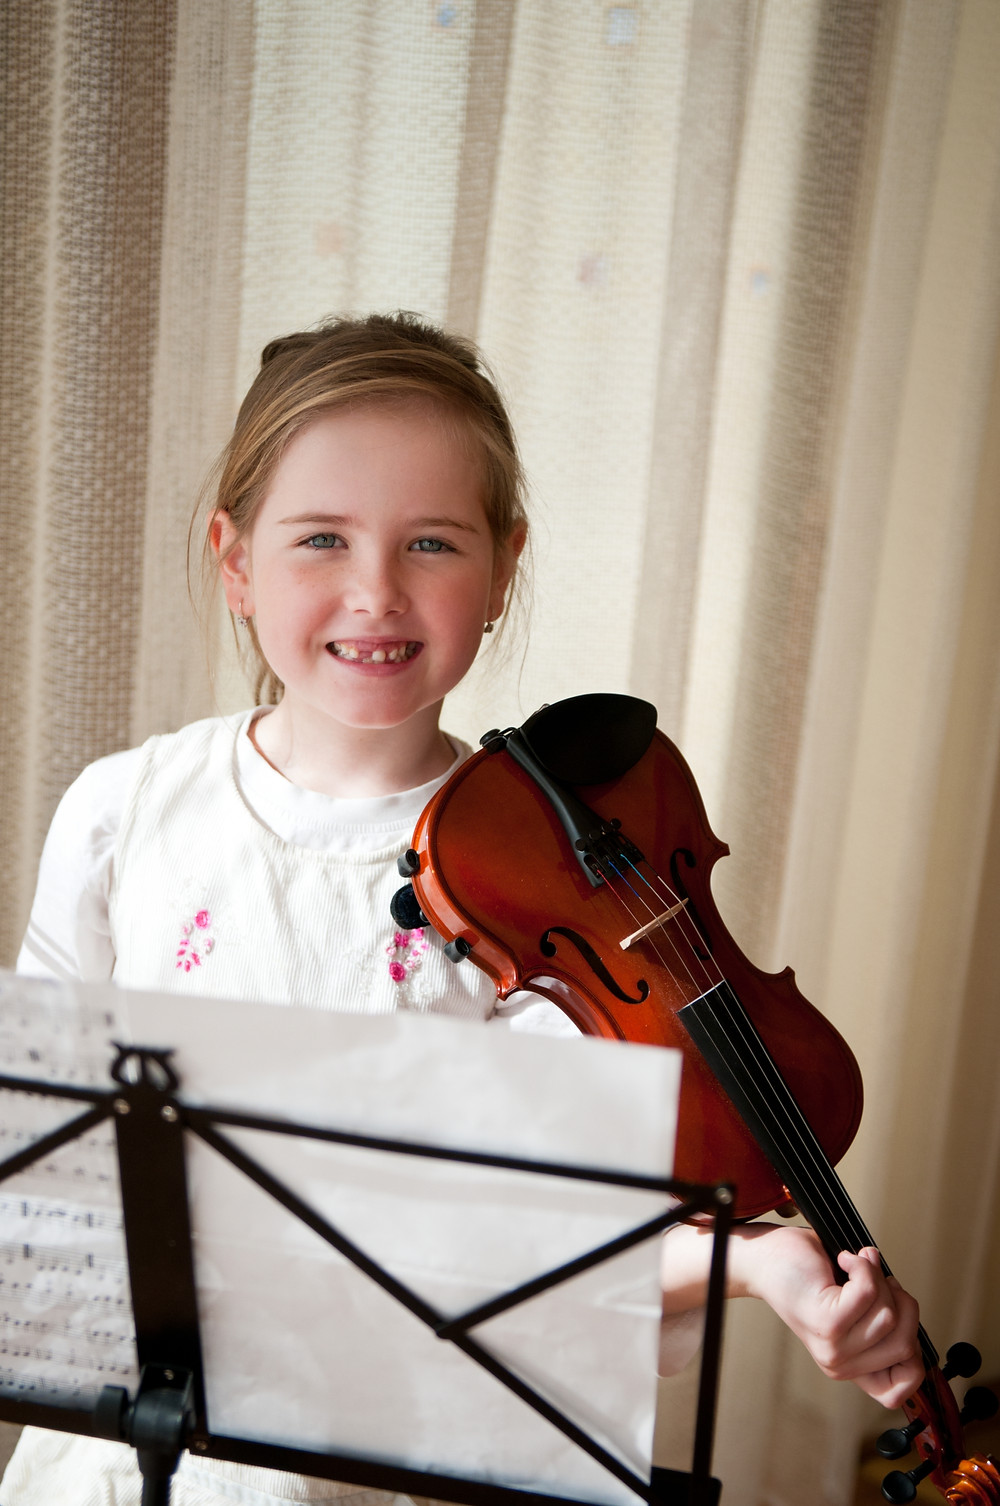 young girl smiling and playing violin